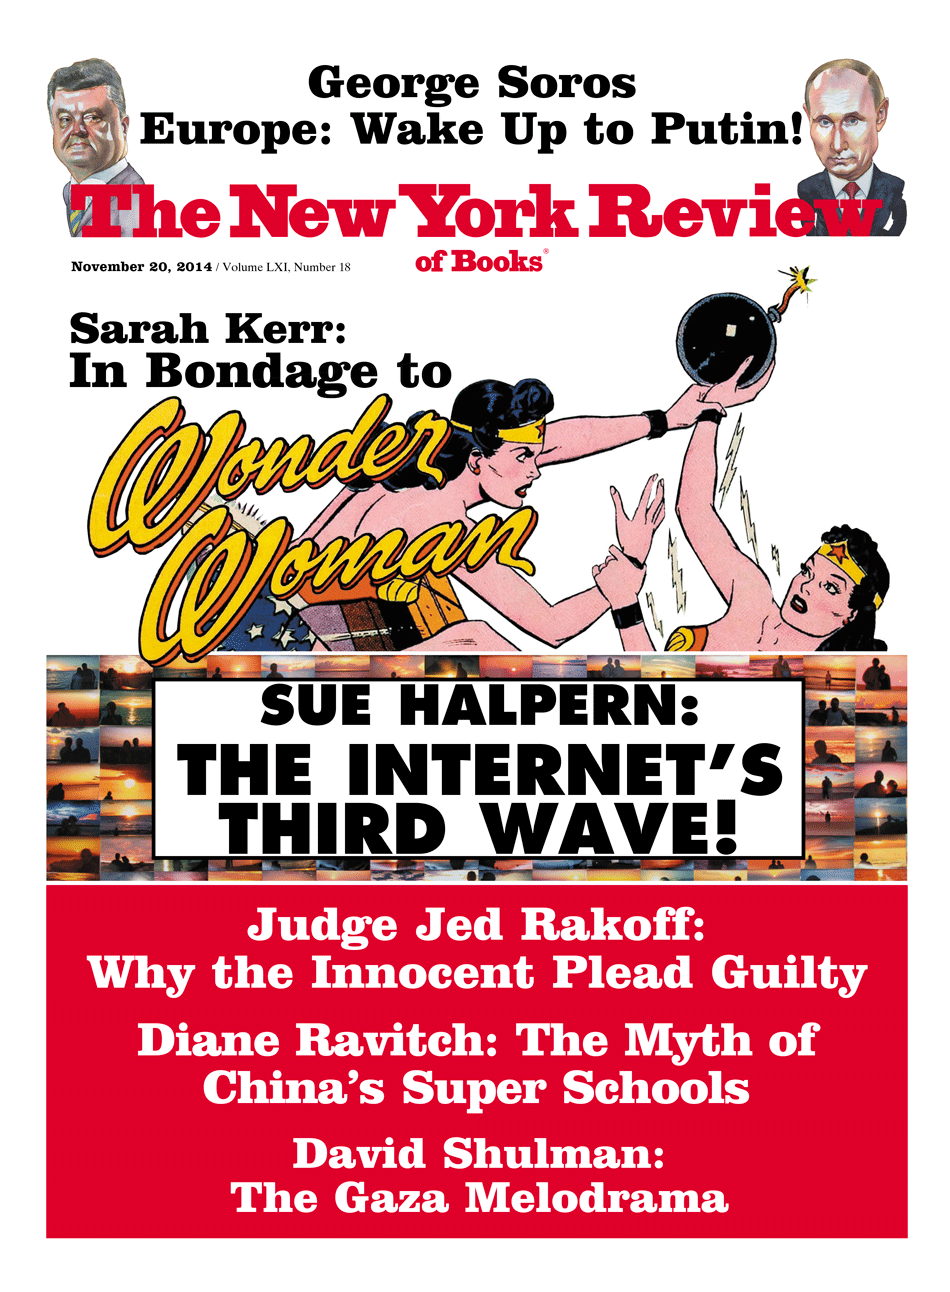 Image of the November 20, 2014 issue cover.